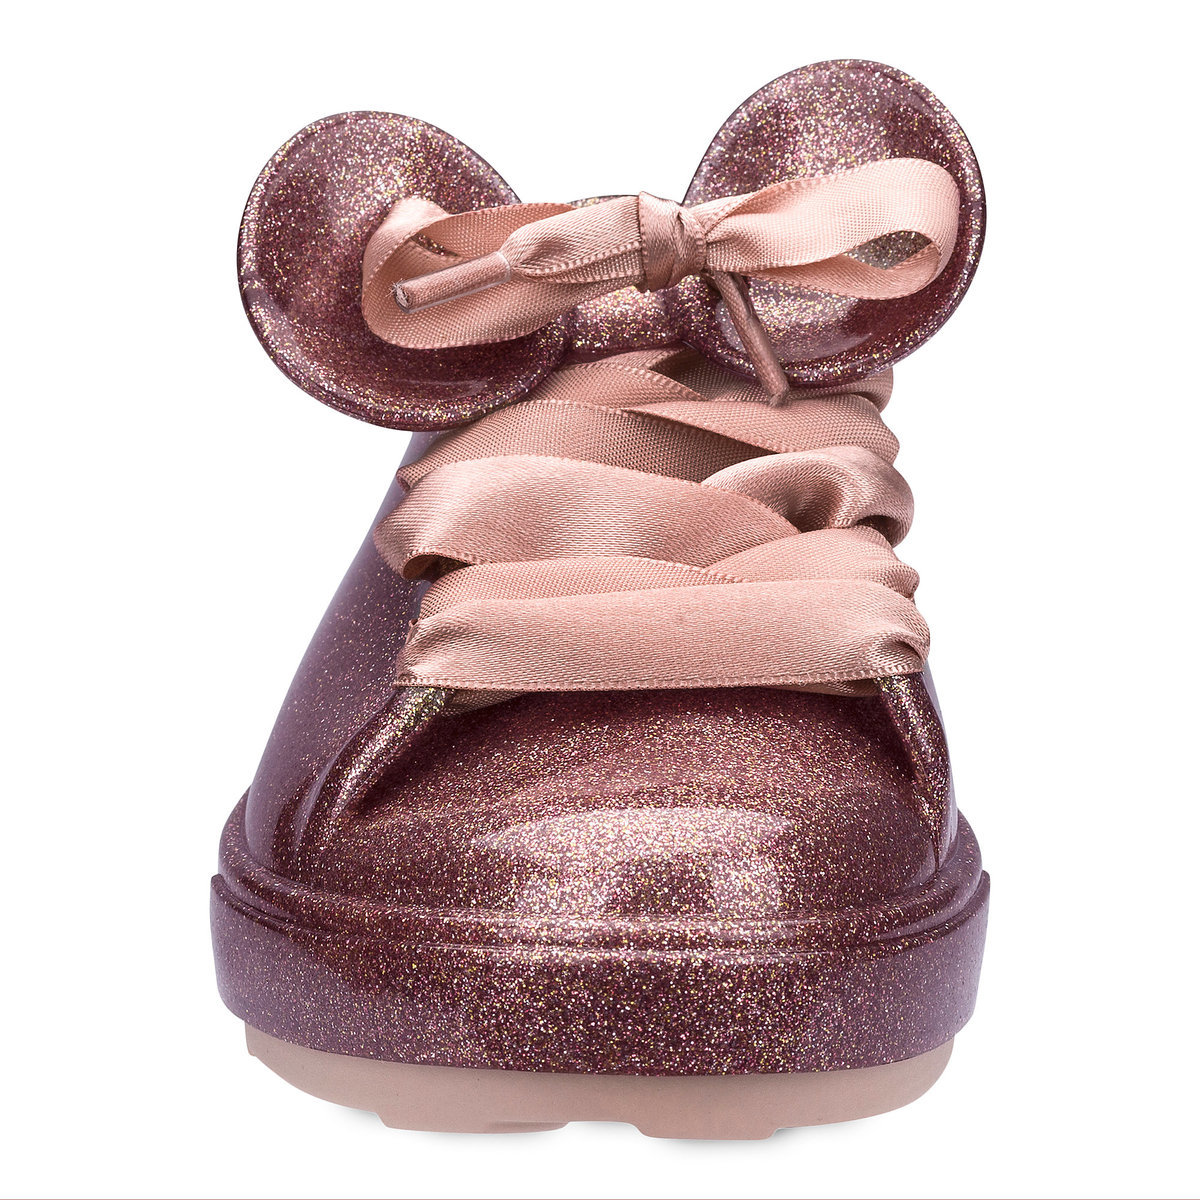 Disney Rose Gold Sneakers Are the \